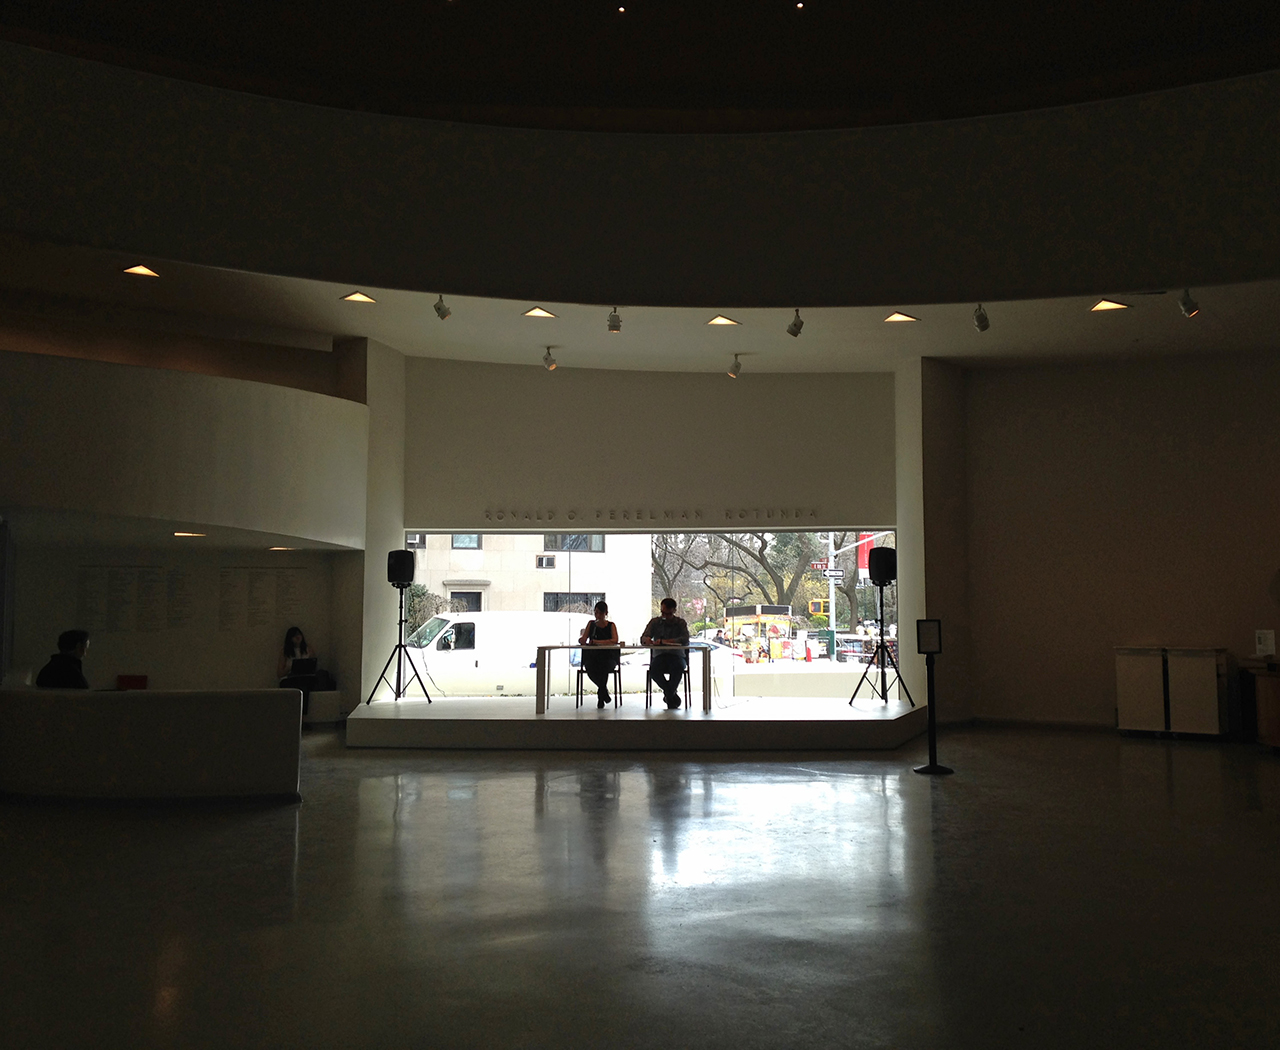 Reading of On Kawara's 'One Million Years' at the Guggenheim Museum (all photos by the author for Hyperallergic)